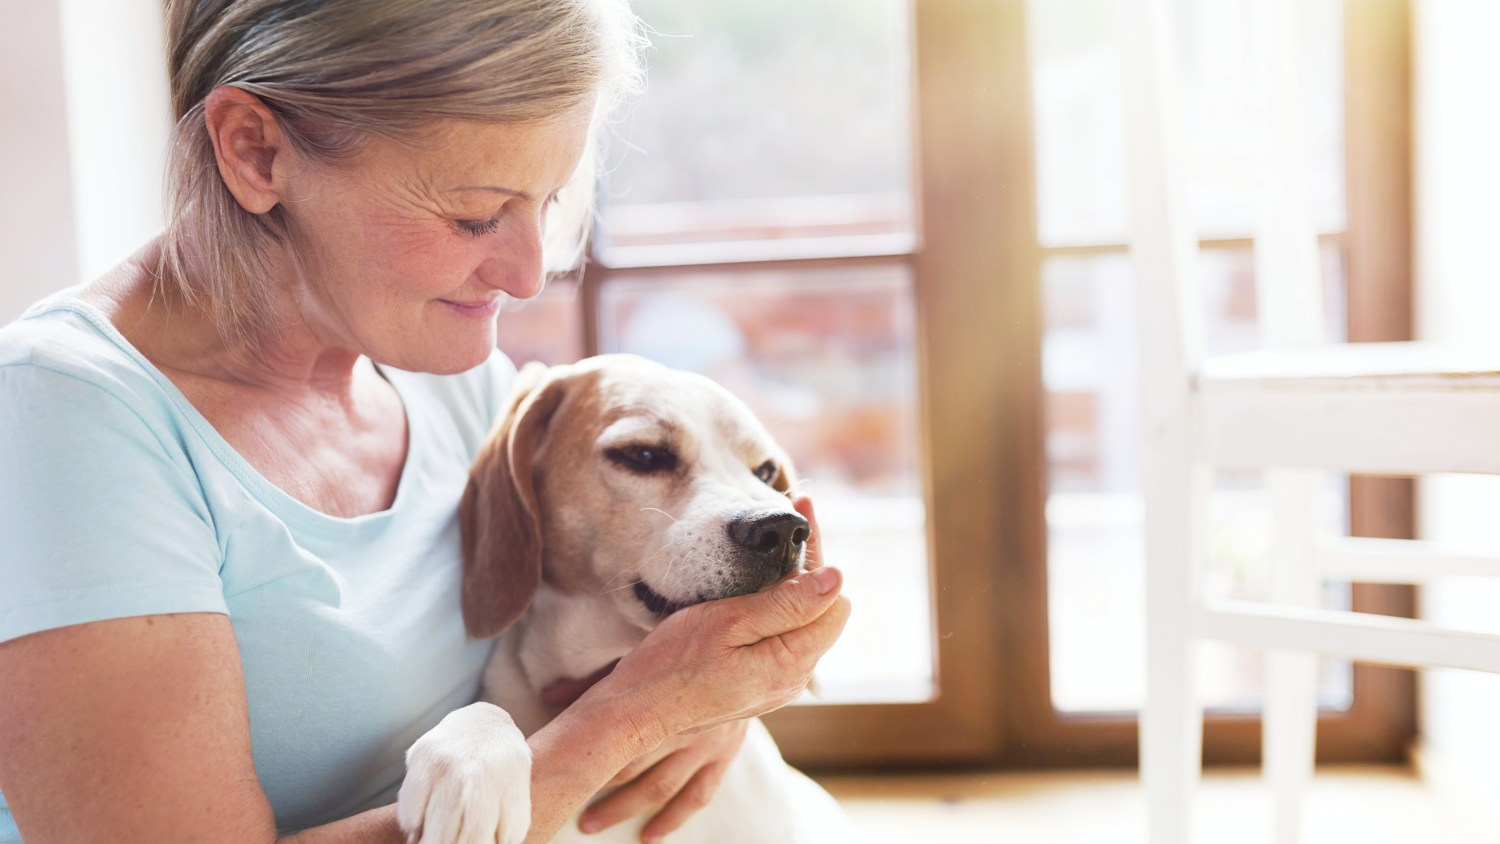 a woman holding and petting her dog